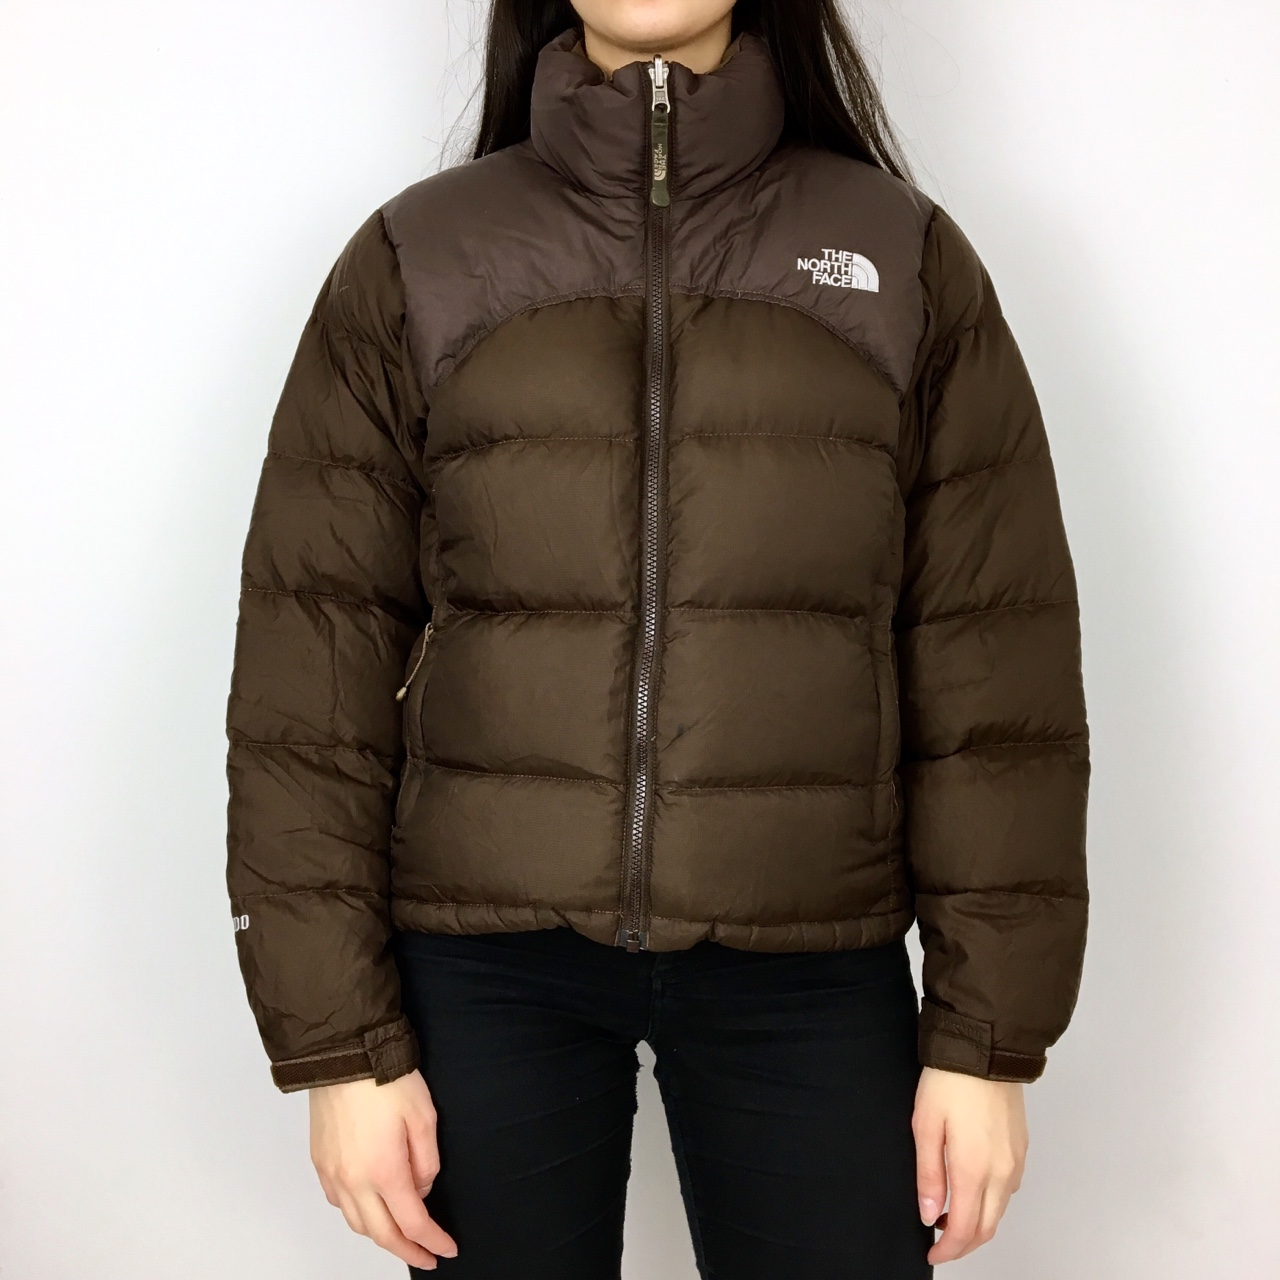 ab2e058a3 The North Face Brown 700 Down Filled Nuptse Puffer... - Depop